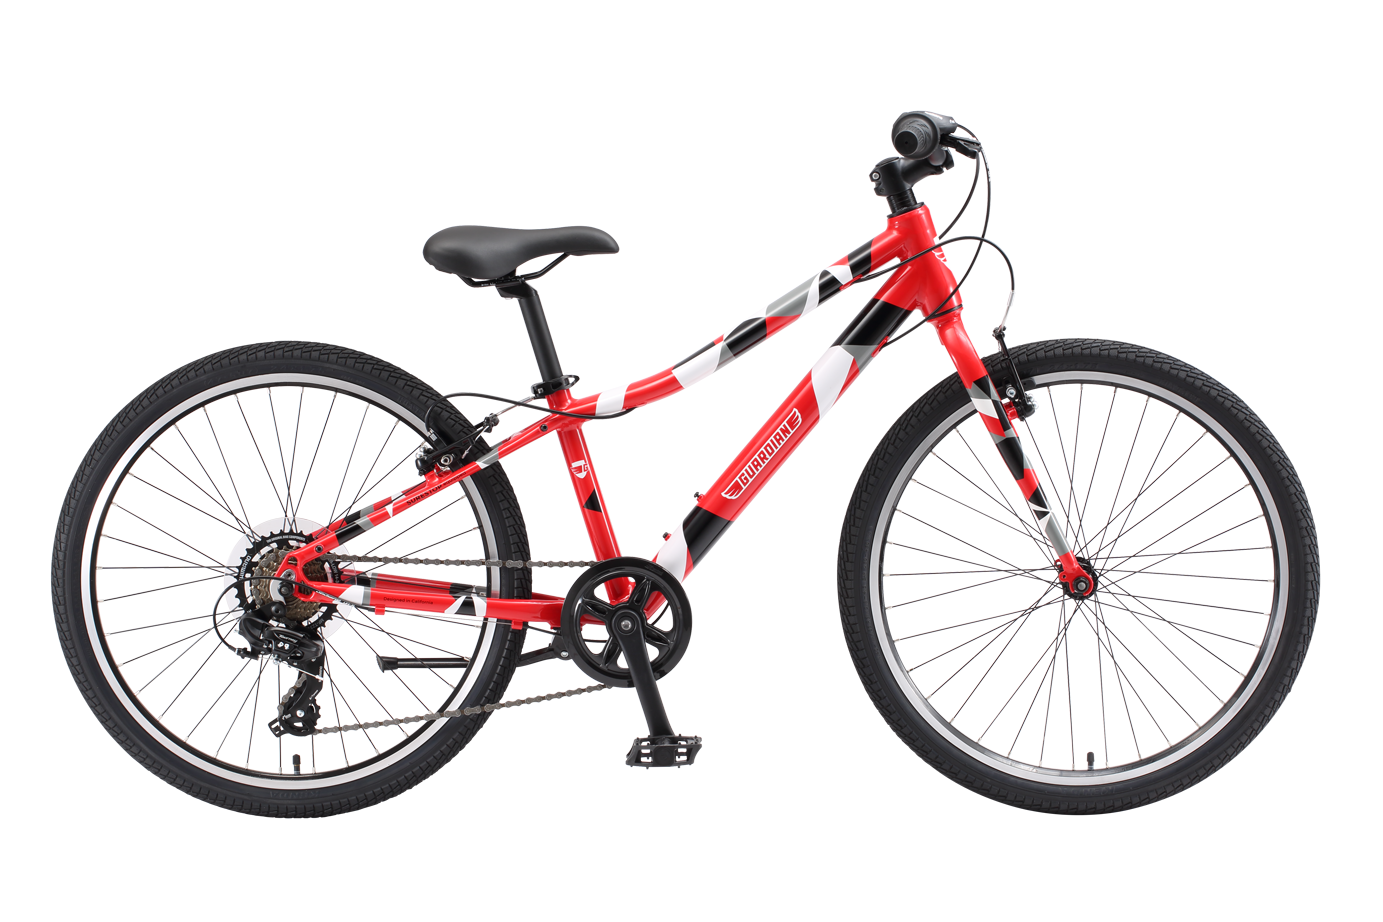 The Best Bike For A 7 Year Old In 2018 Cyclist Zone